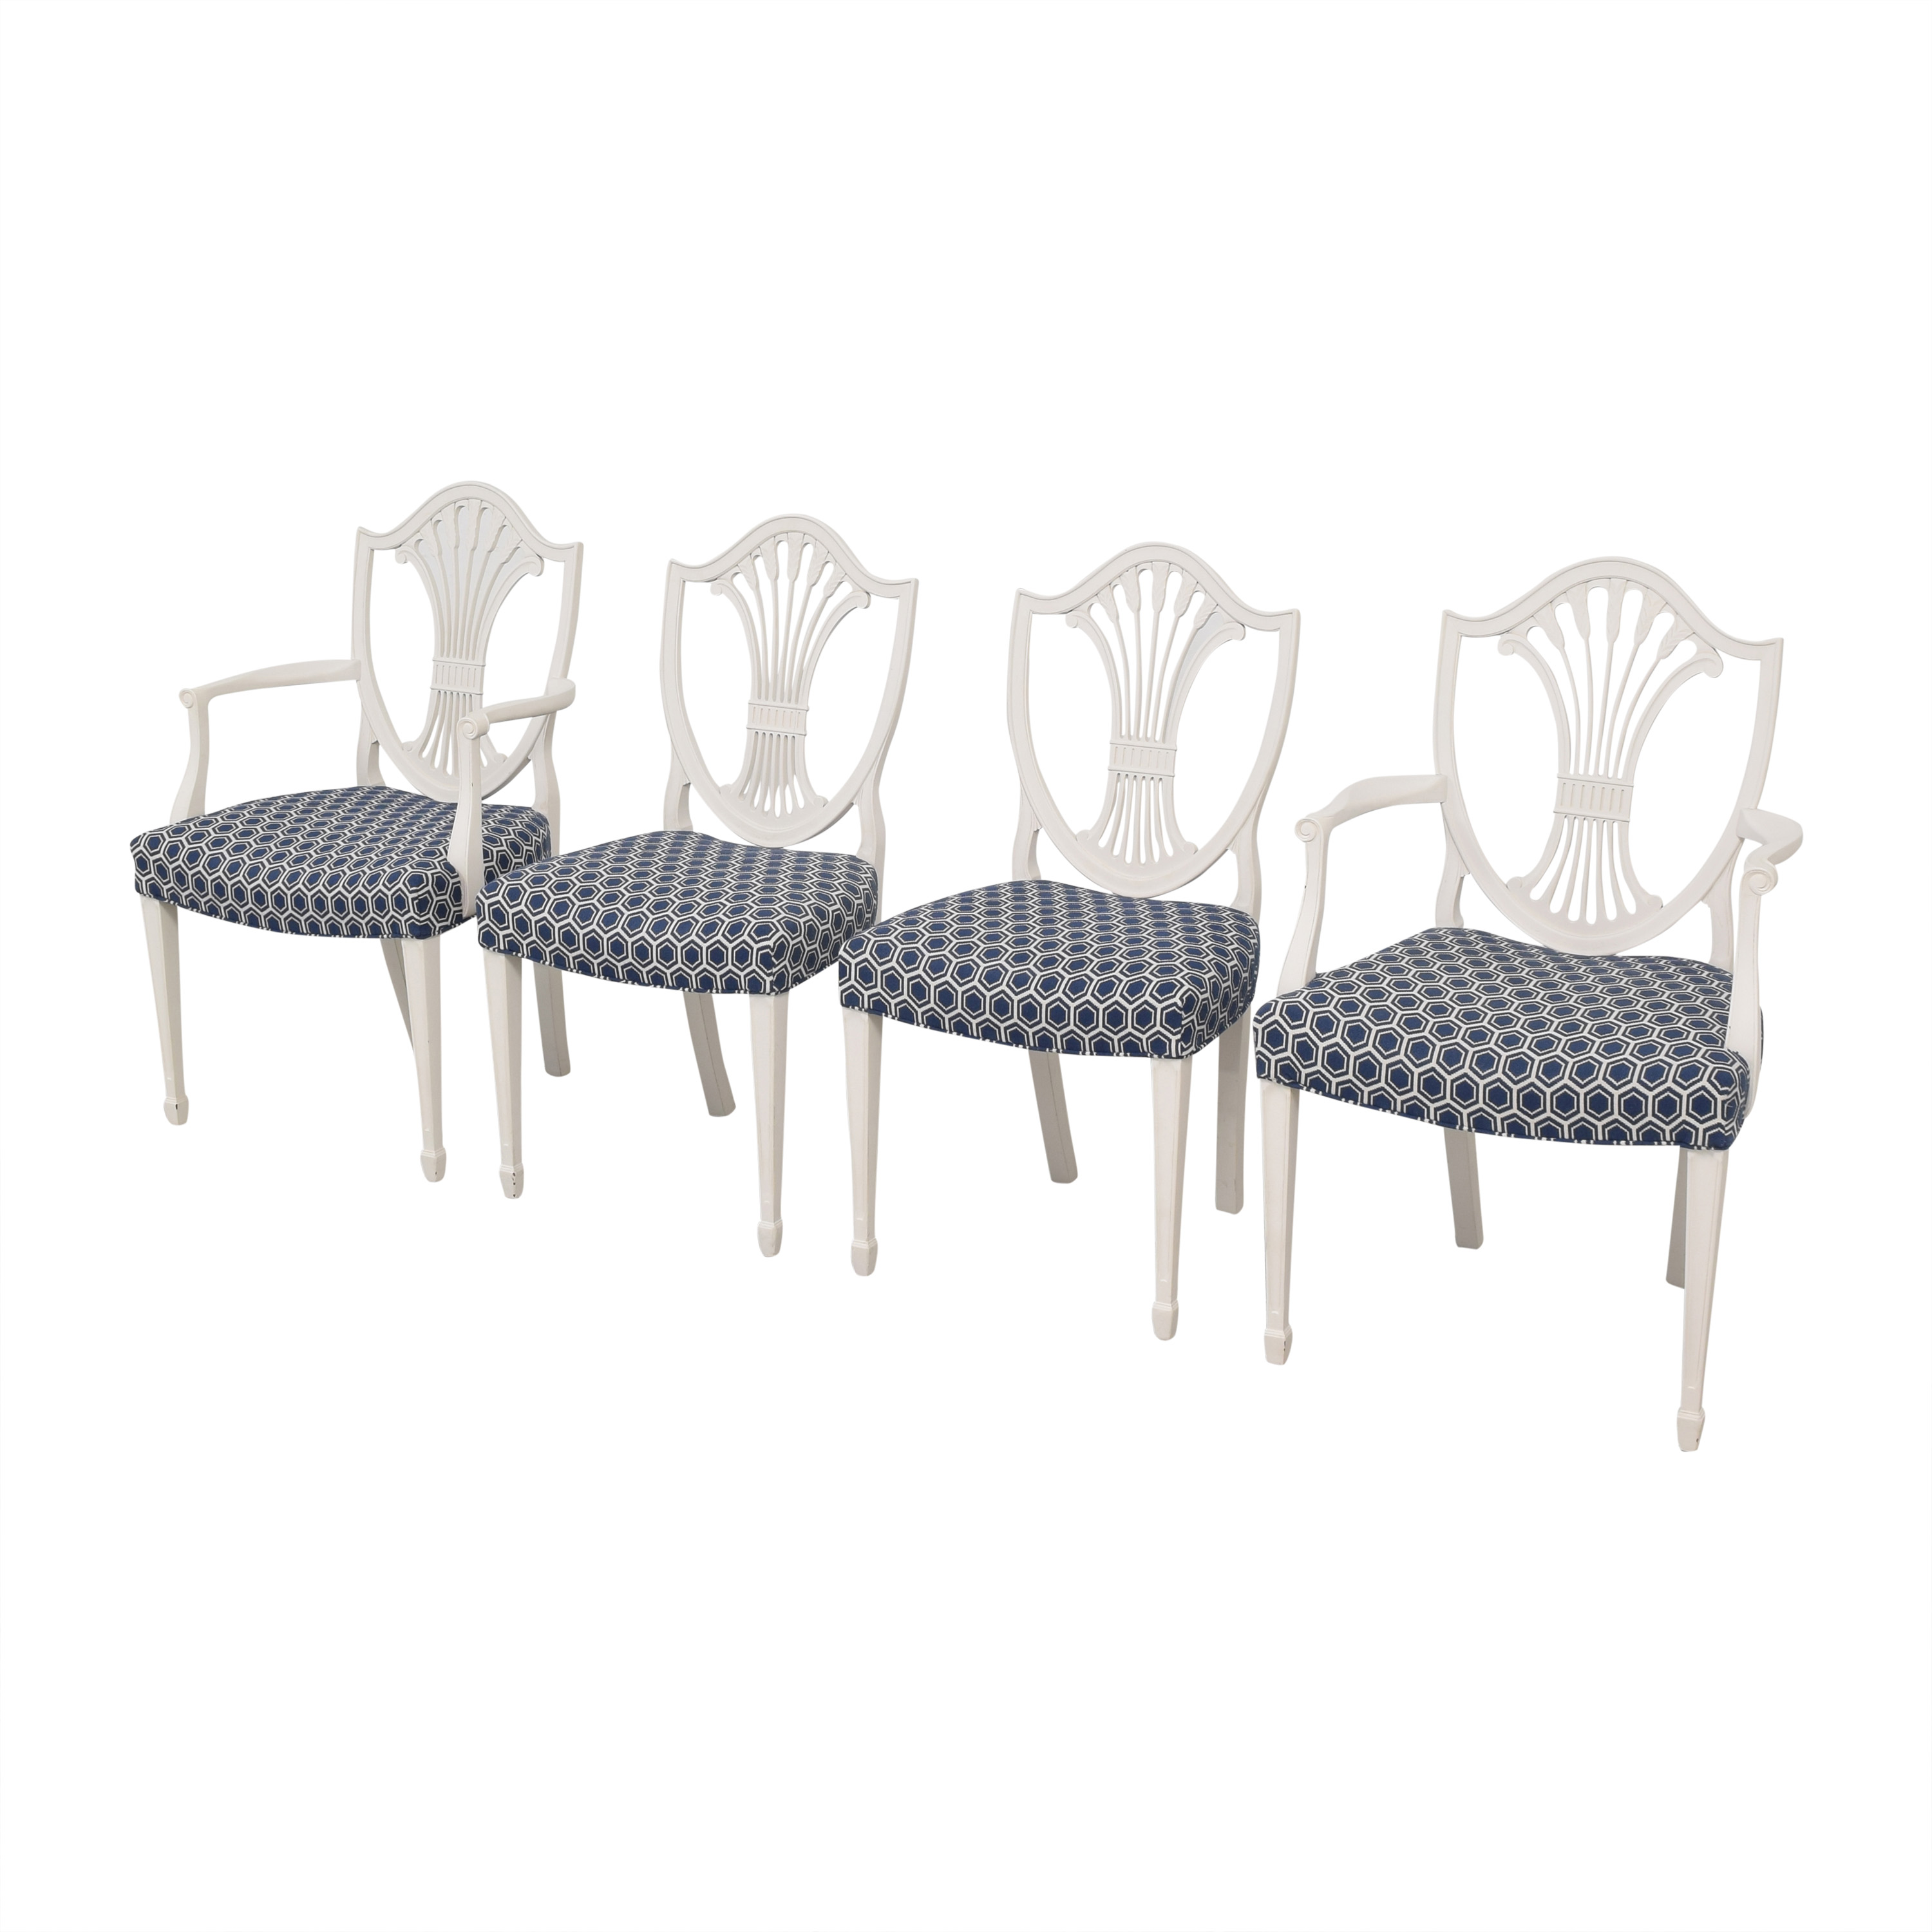 buy Refurbished Antique Wheat Back Dining Chairs  Chairs